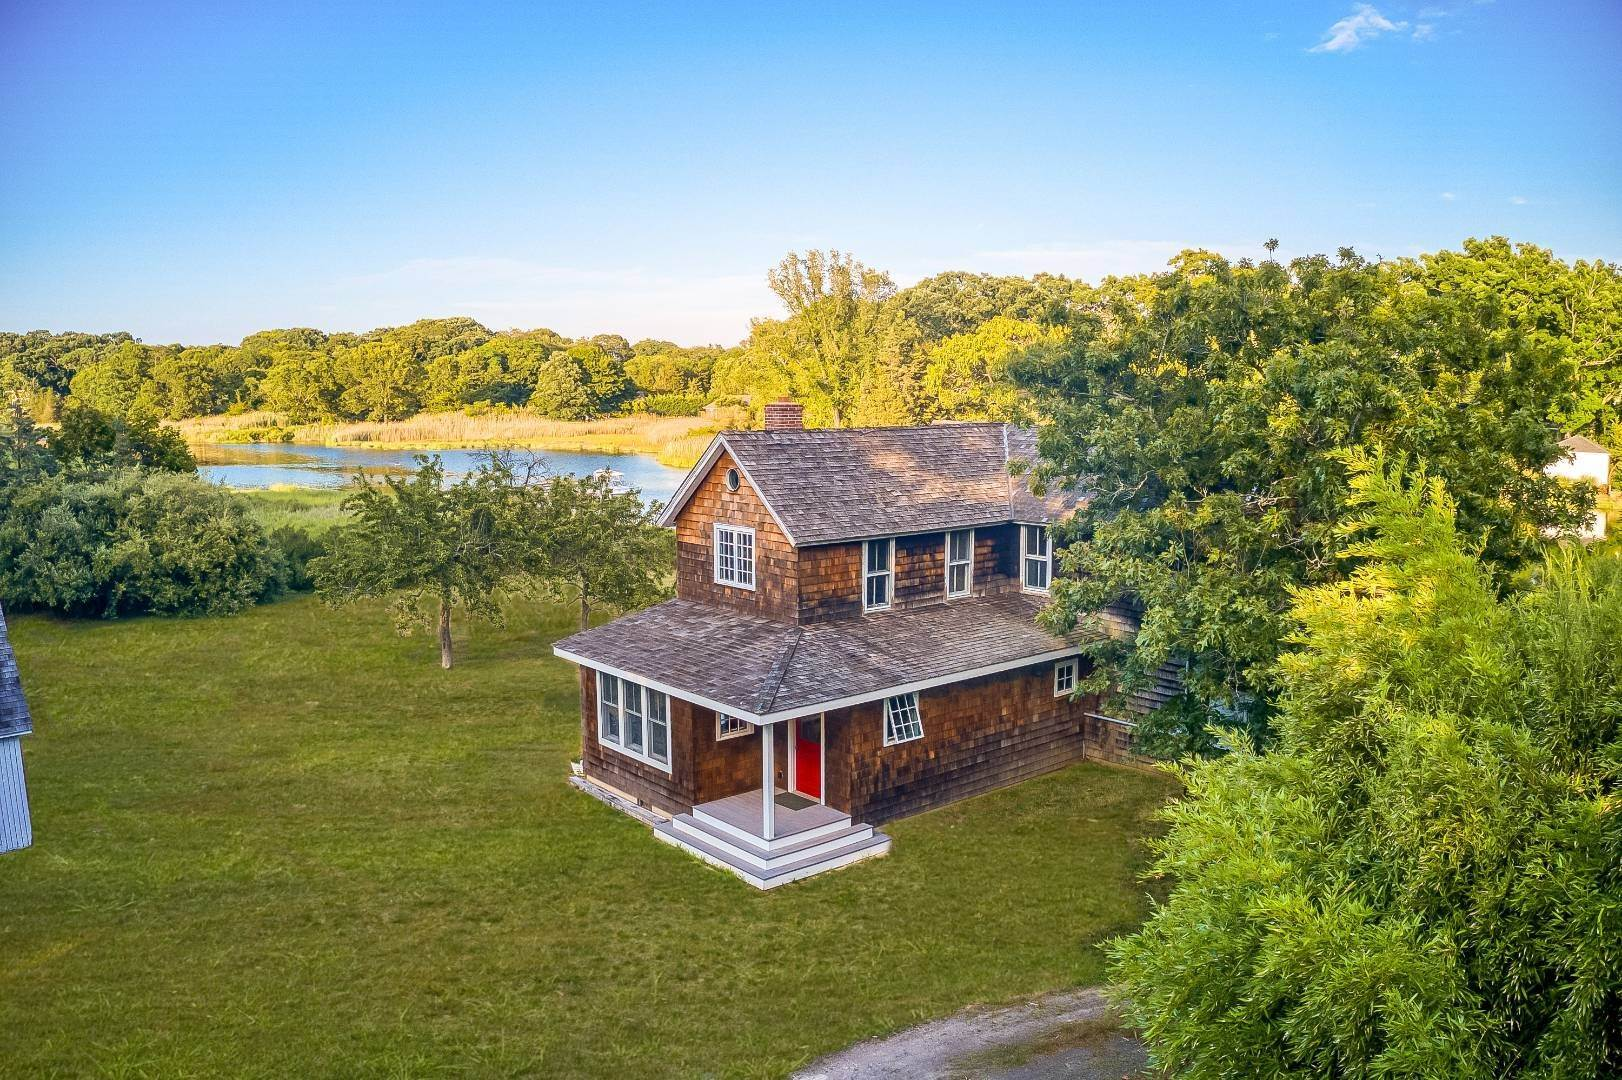 Single Family Home for Sale at Mattituck Waterfront Farmhouse On 2 Acres 1356 Grand Ave, Mattituck, NY 11952